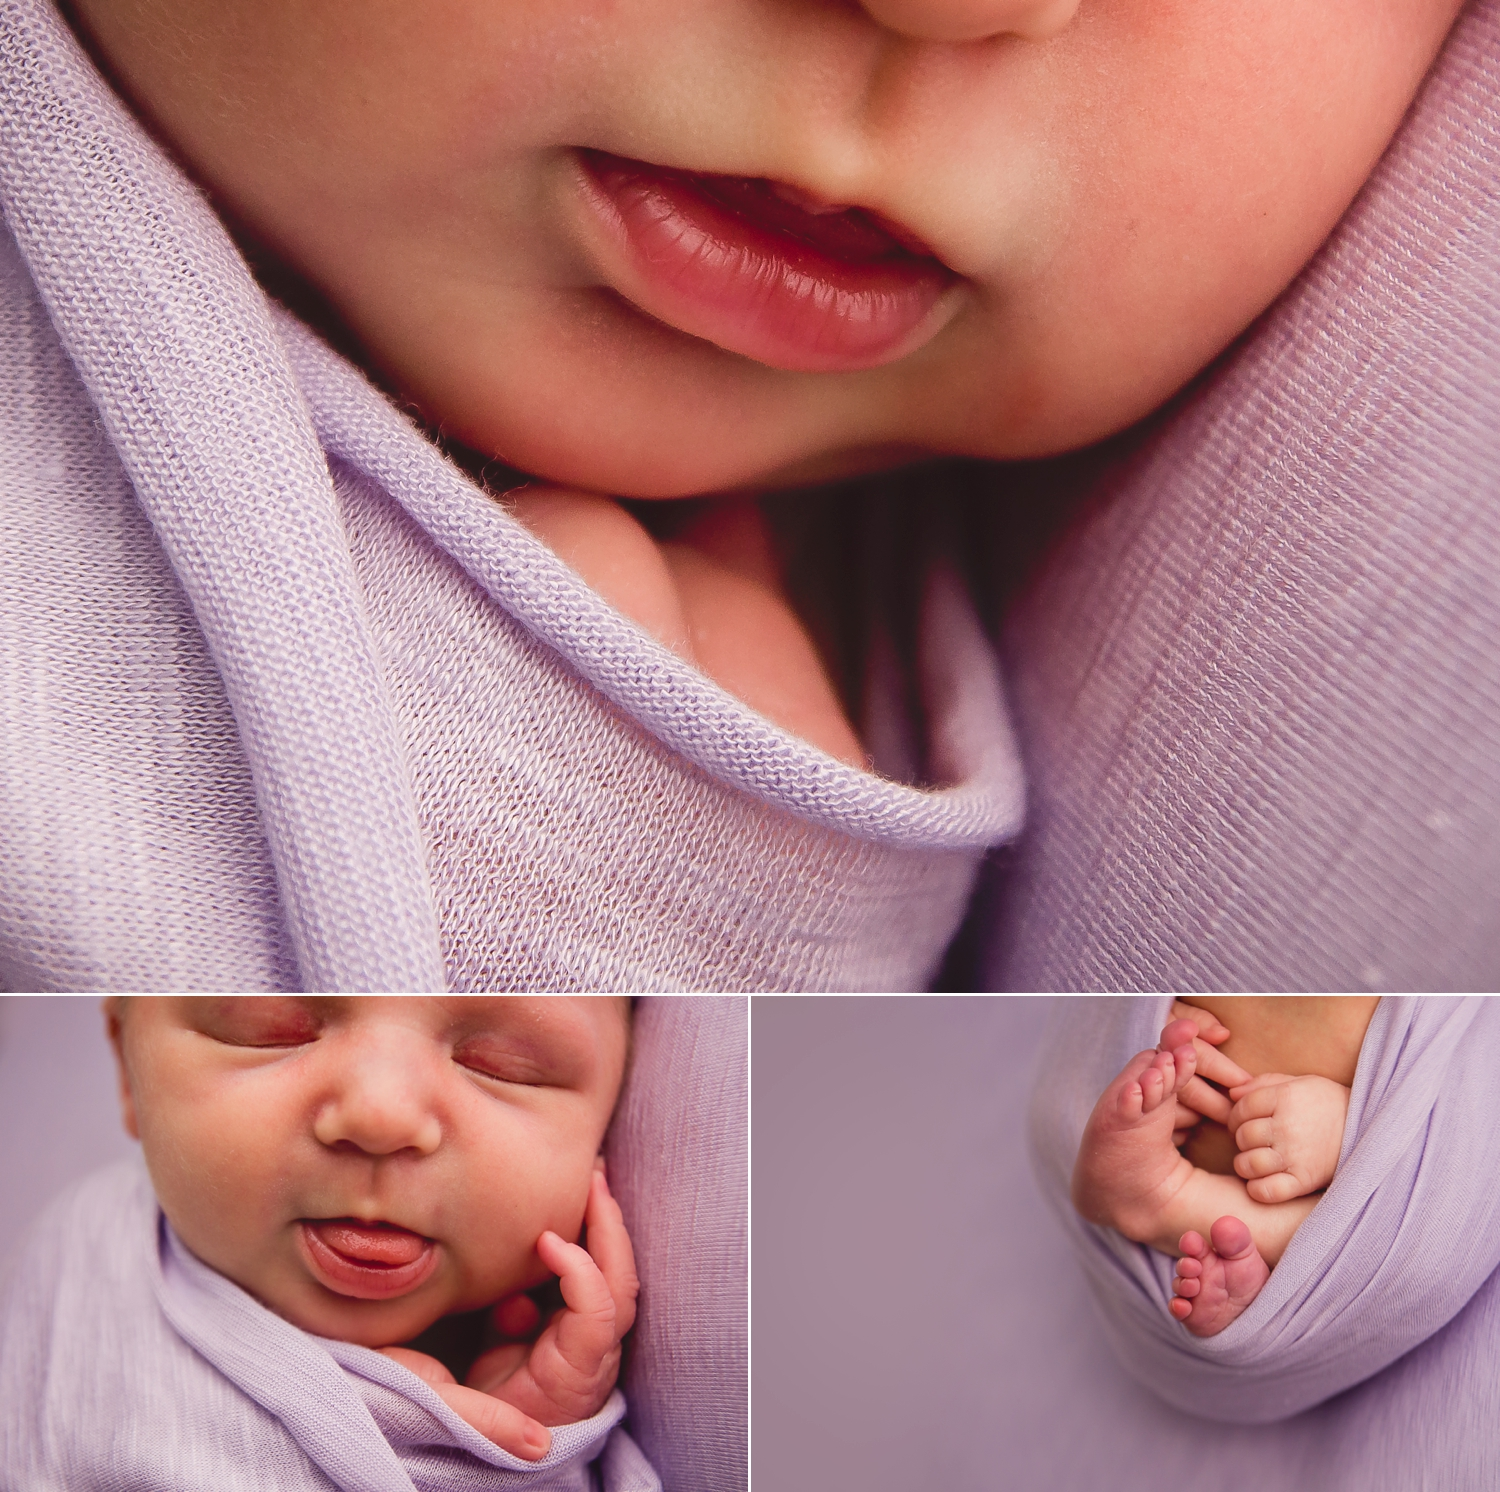 Newborn lips and toes